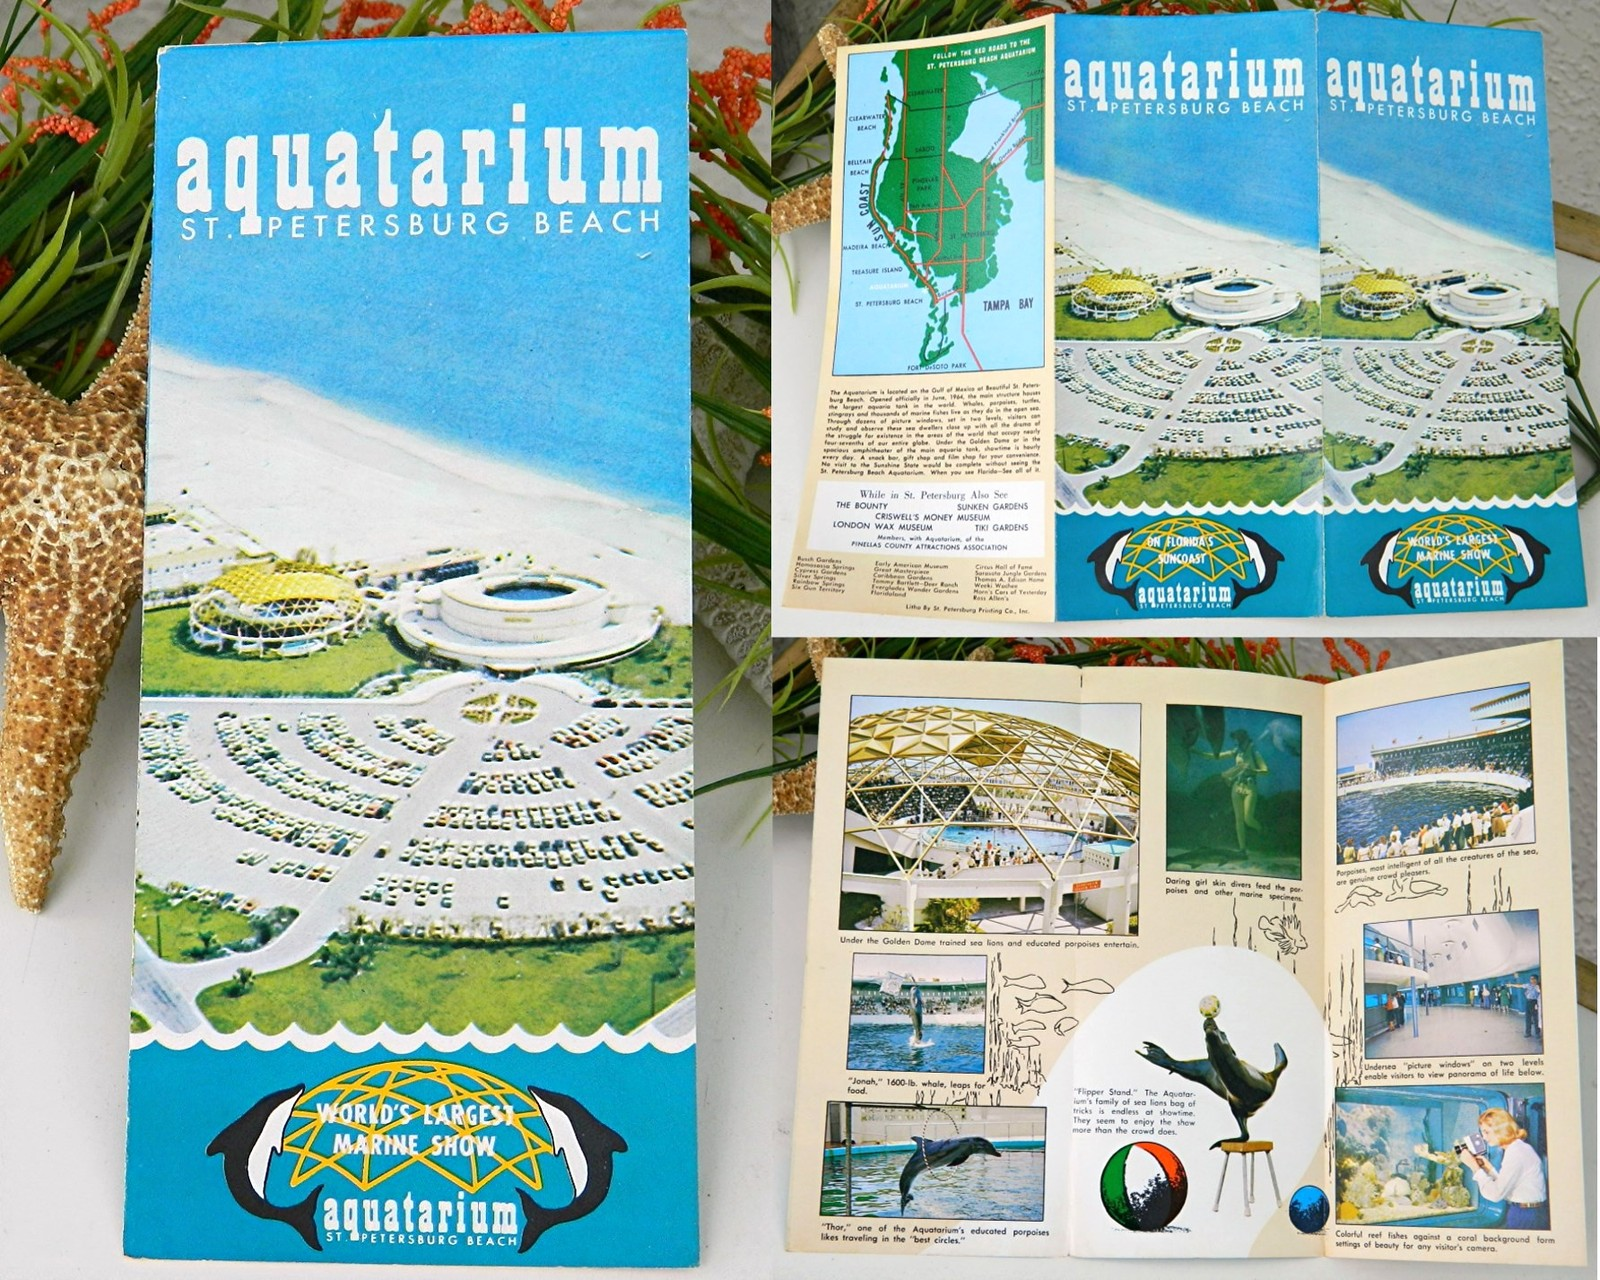 Vintage Aquatarium Brochure Aquarium St Pete Beach Florida 1960s